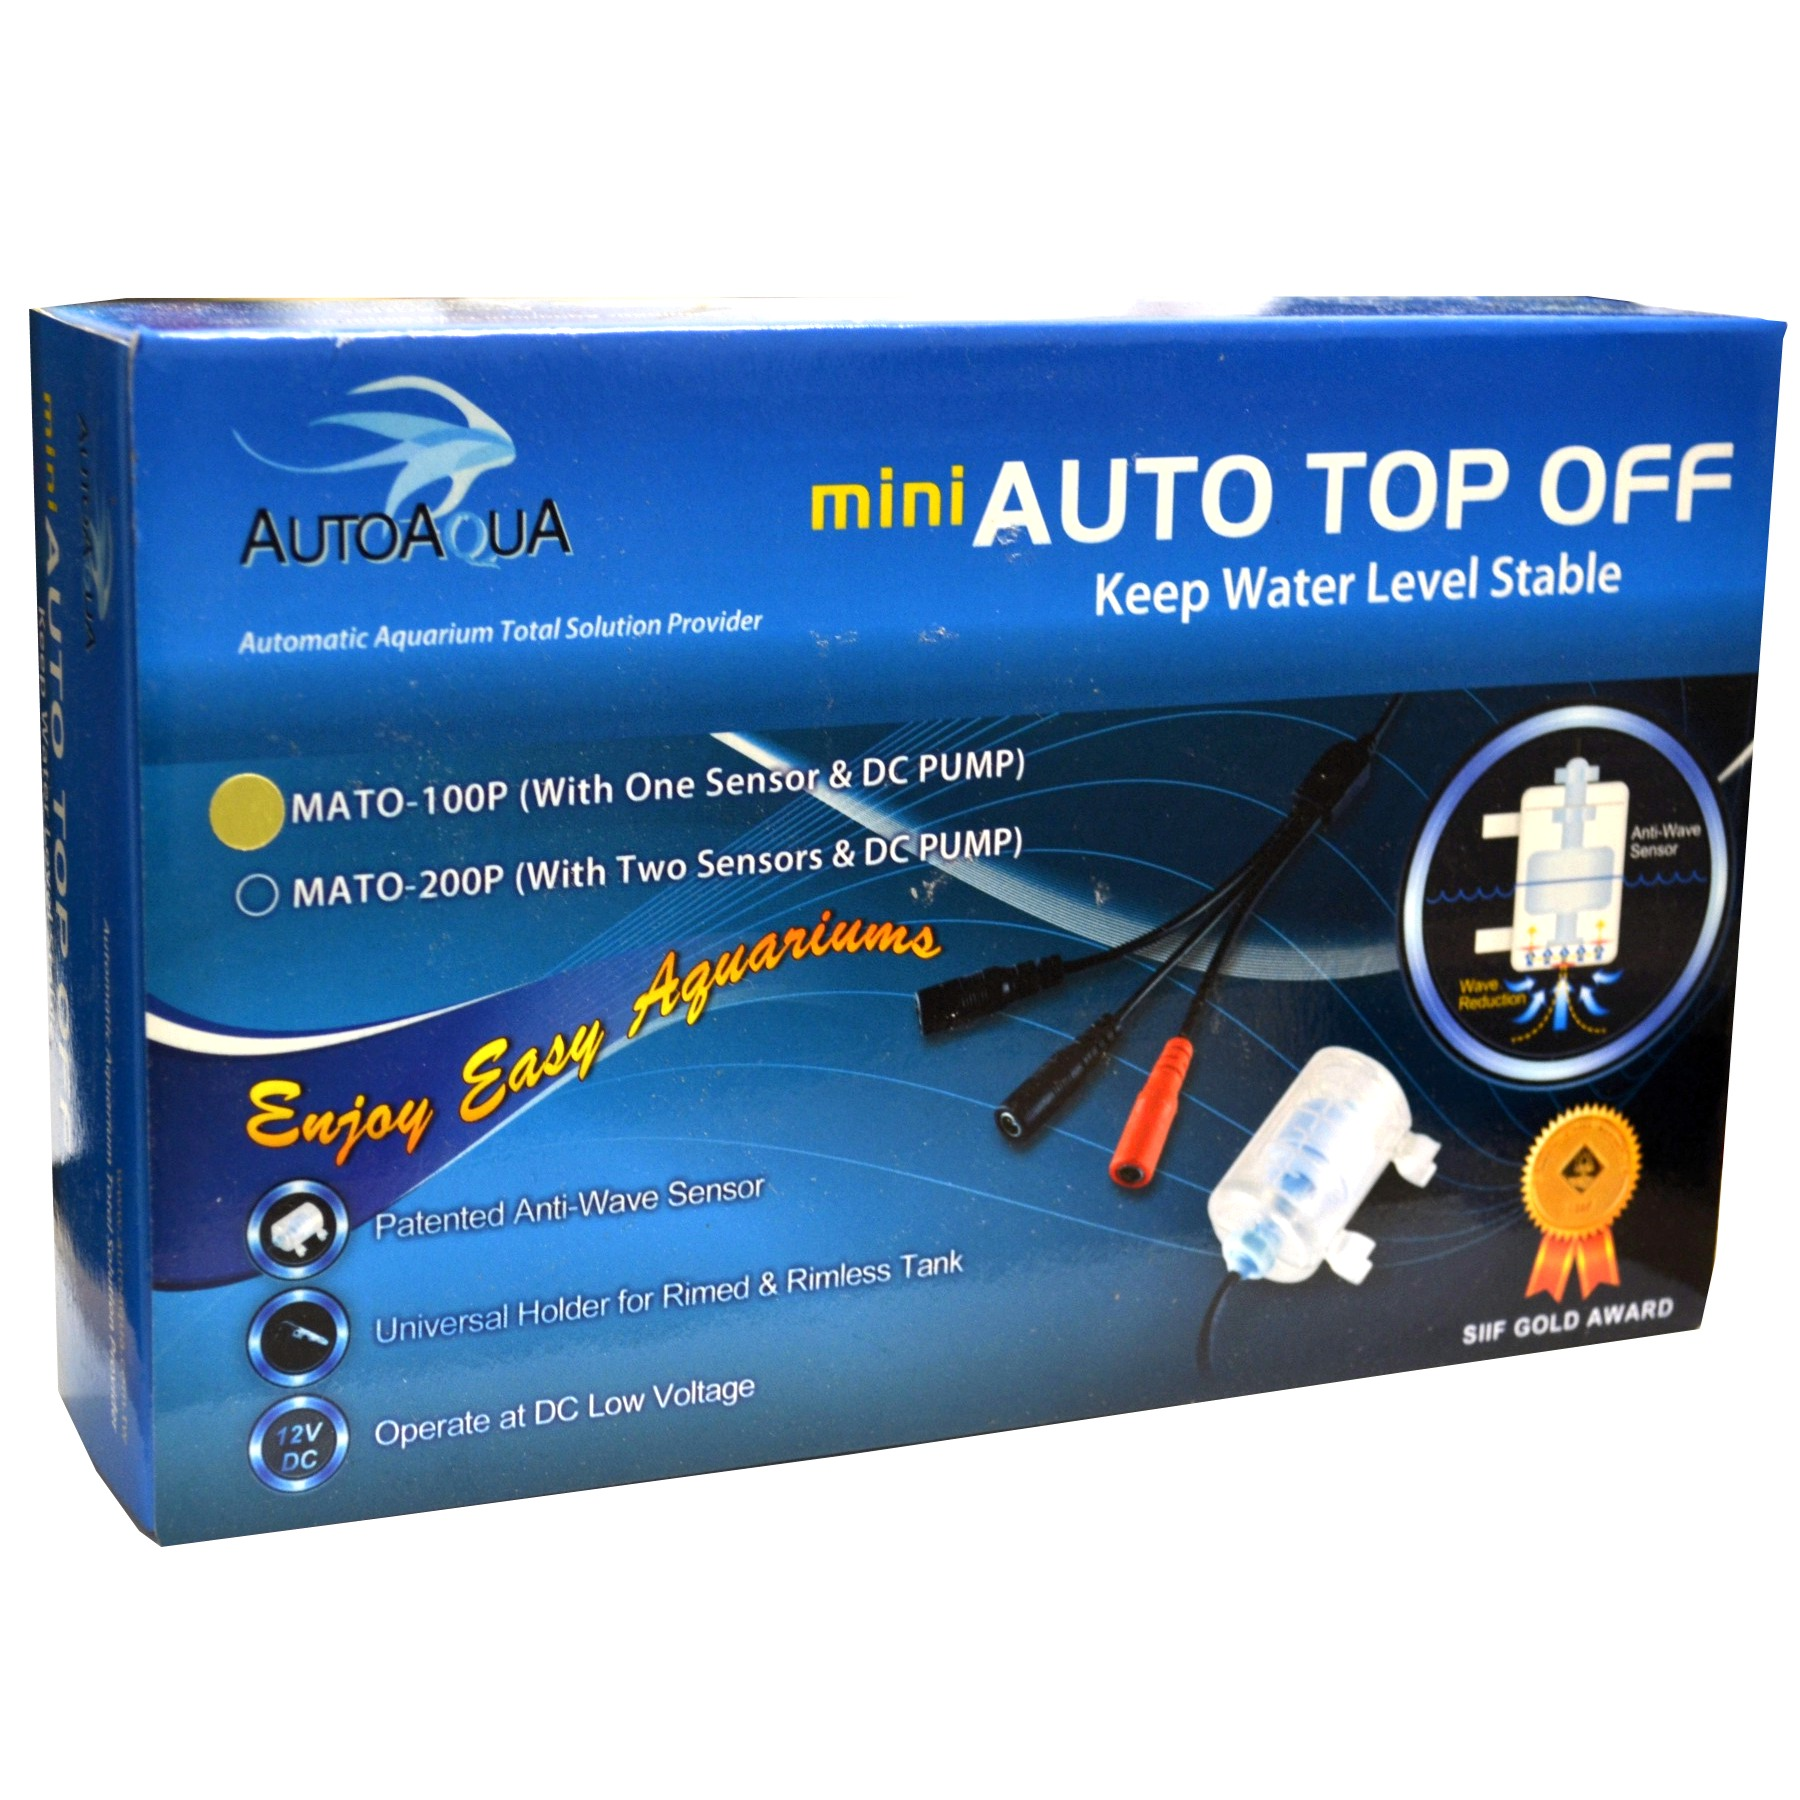 autoaqua-mini-auto-top-off-100p-osmolateur-aquarium